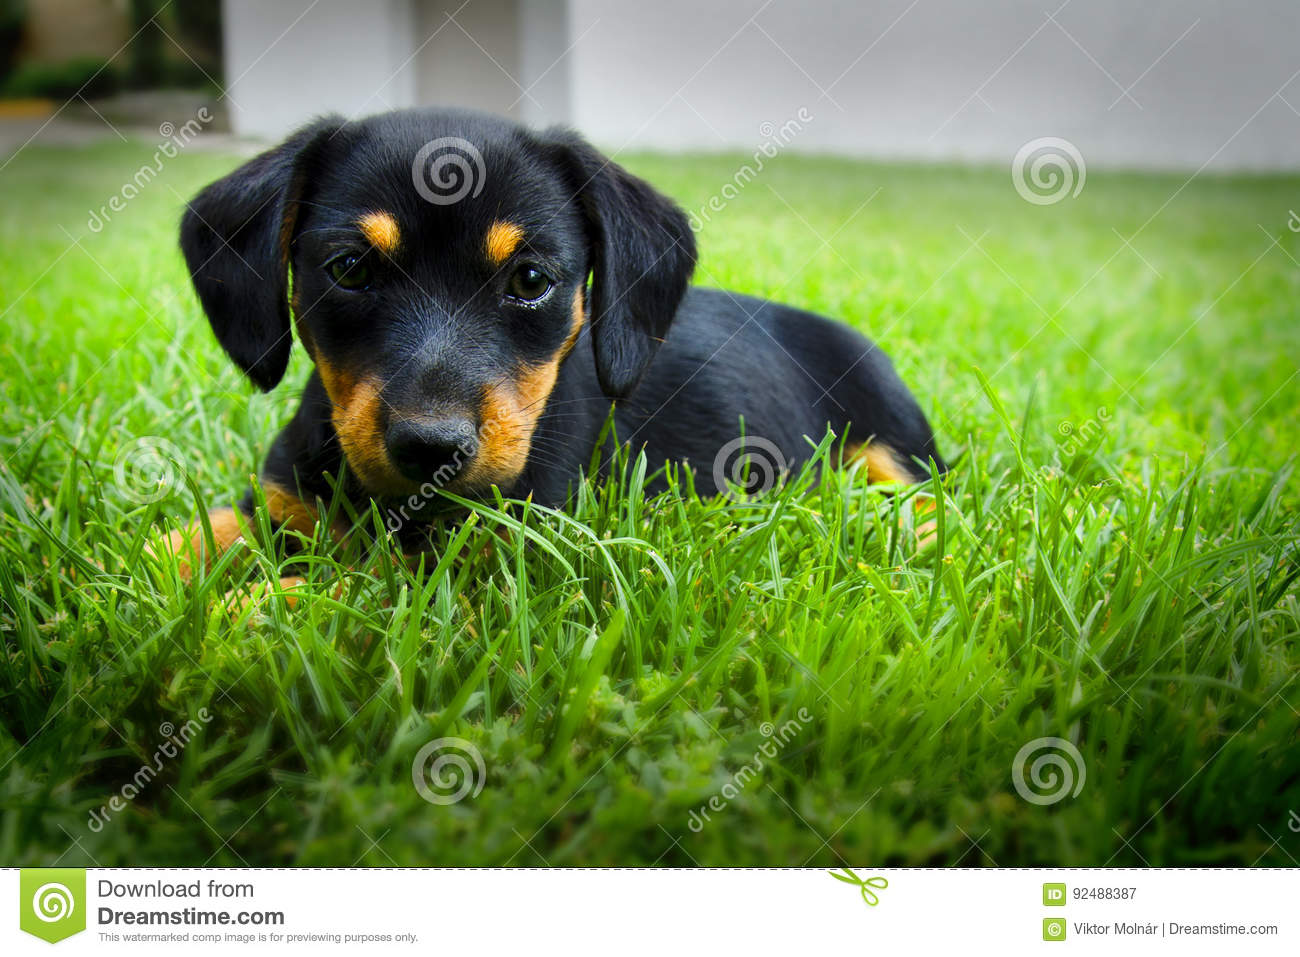 Dachshund puppy stock image  Image of loyalty, friend - 92488387